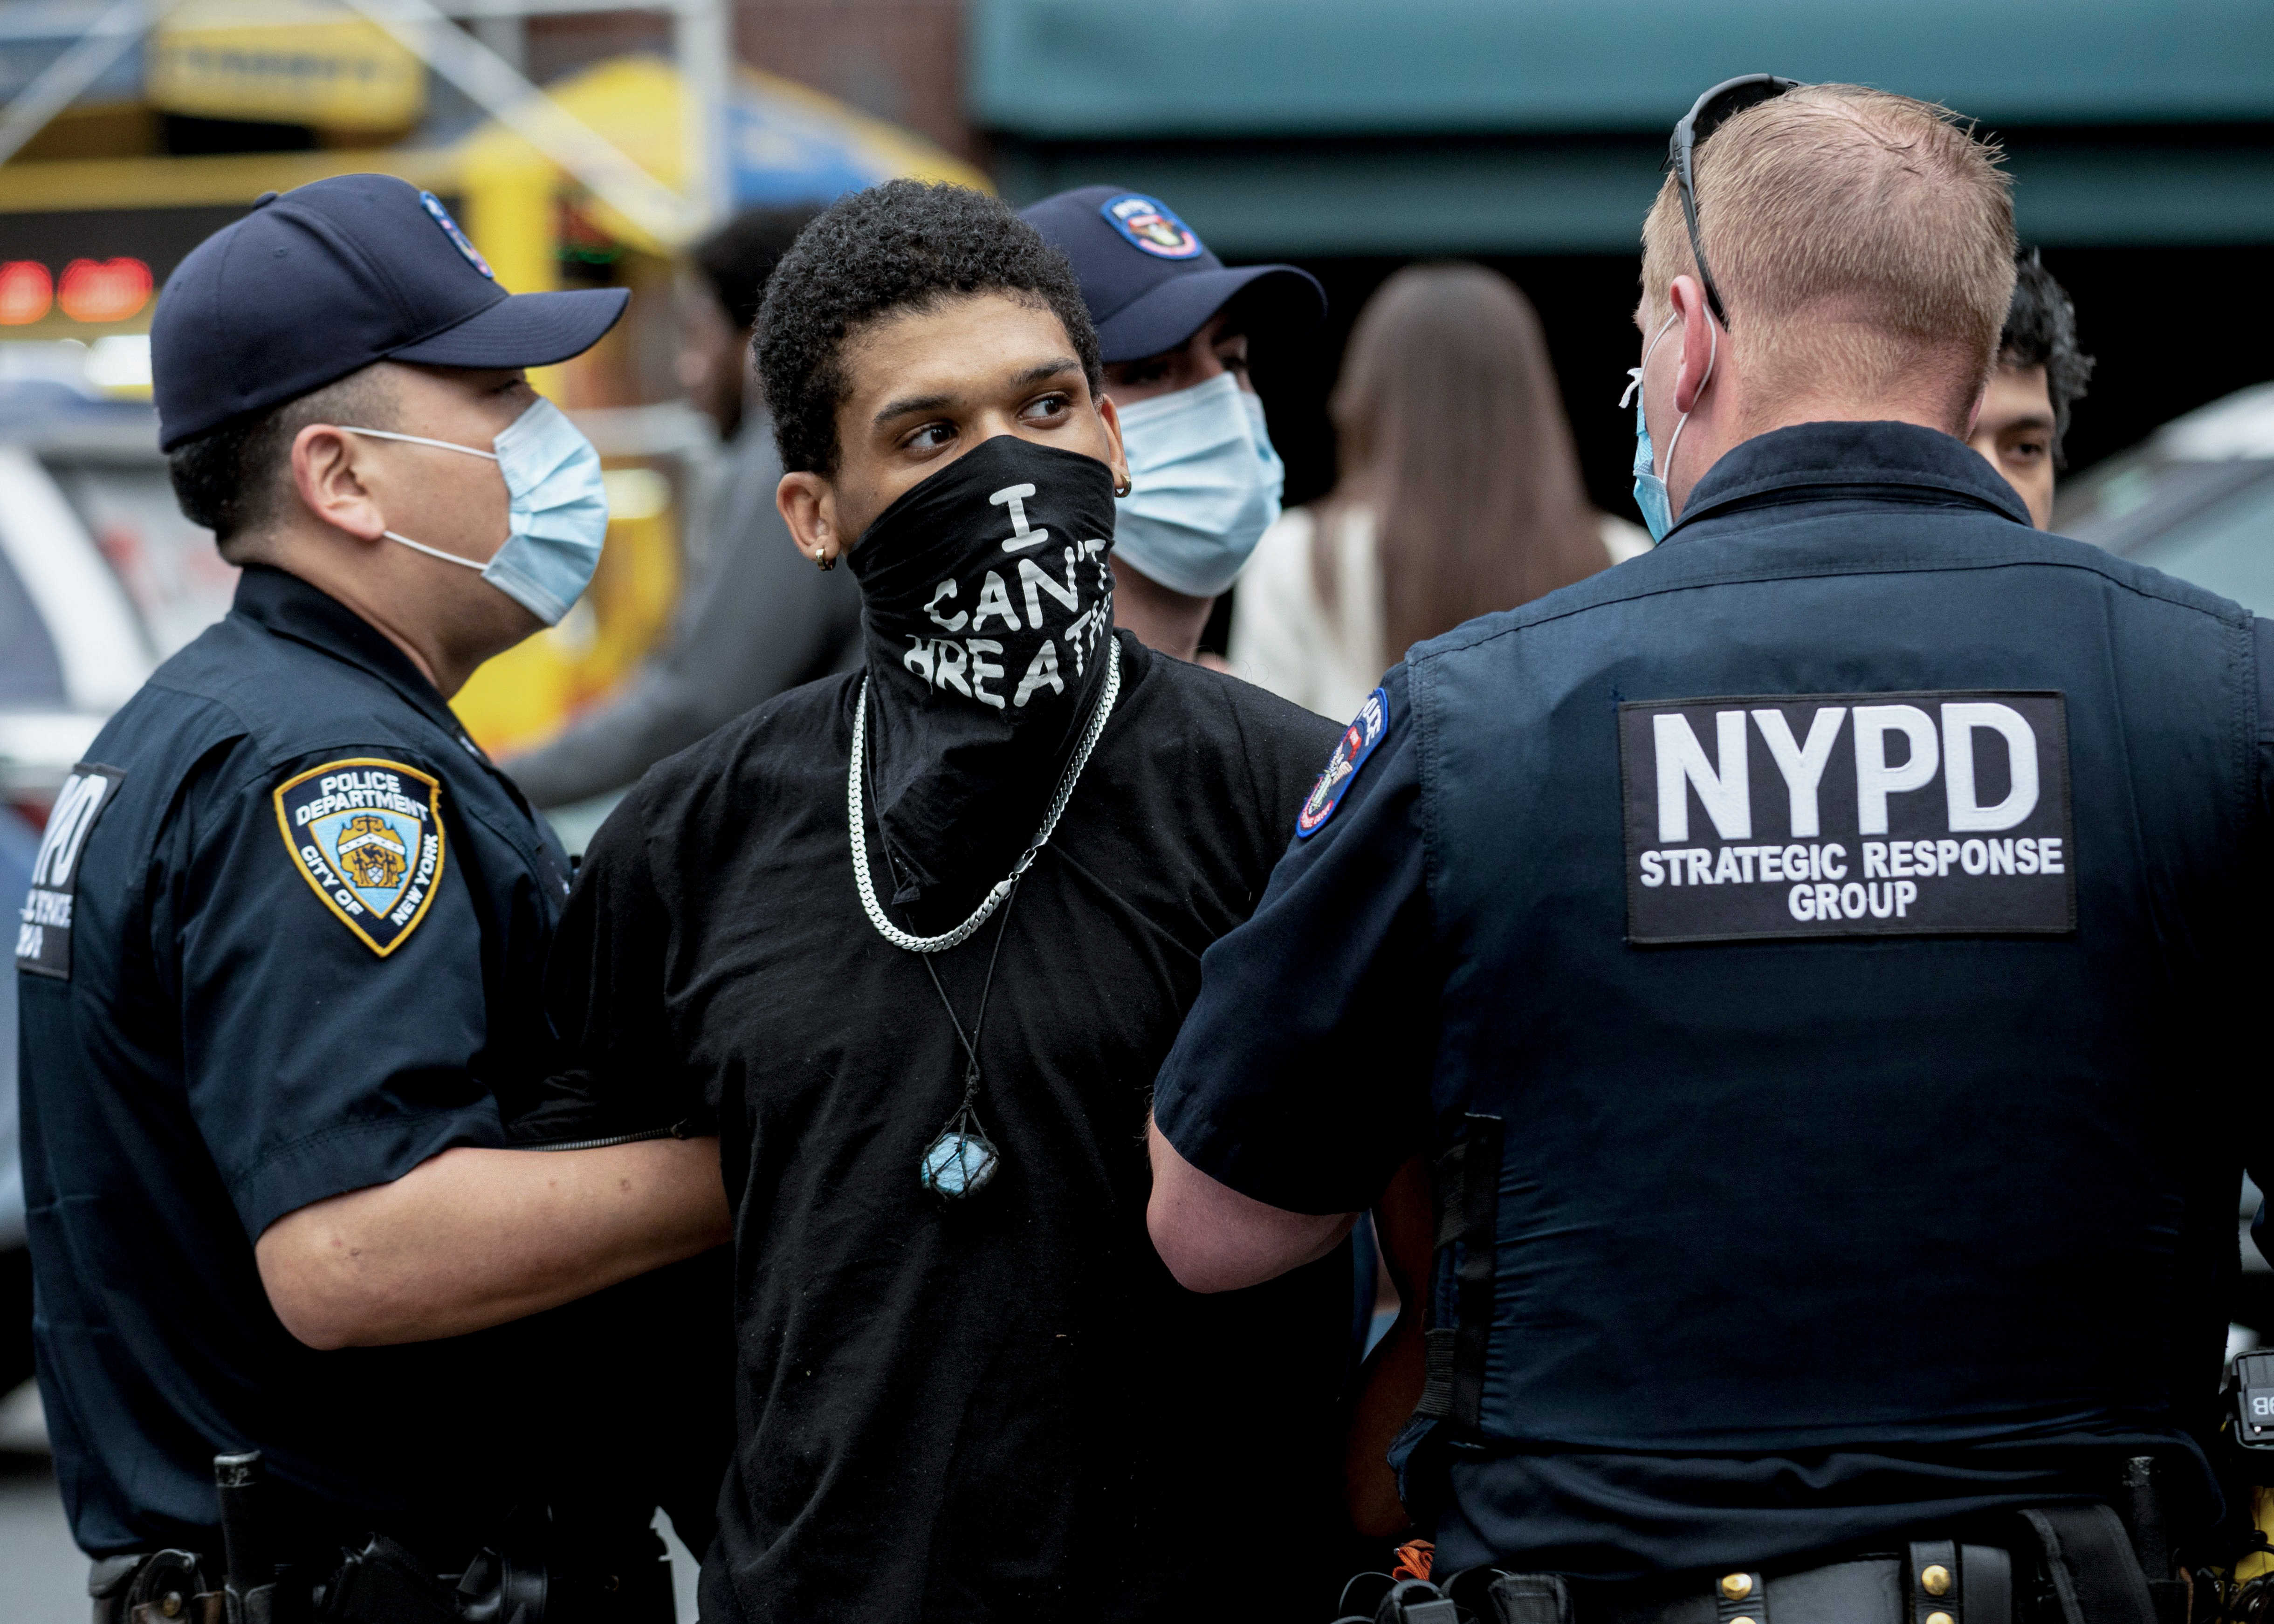 """NYPD officers arrest a protestor during a """"Black Lives Matter"""" demonstration on May 28, 2020 in New York City, in outrage over the death of a black man in Minnesota who died after a white policeman kneeled on his neck for several minutes. - Concern and anger over George Floyd's death spread around the country. House Democratic leader Nancy Pelosi said the video footage showed there was no excuse for his death.""""We saw a murder take place before our very eyes. And so the fact that the officers were fired, that's one thing, but there has to be some justice in all of this,"""" she said. (Photo by Johannes EISELE / AFP) (Photo by JOHANNES EISELE/AFP via Getty Images)"""